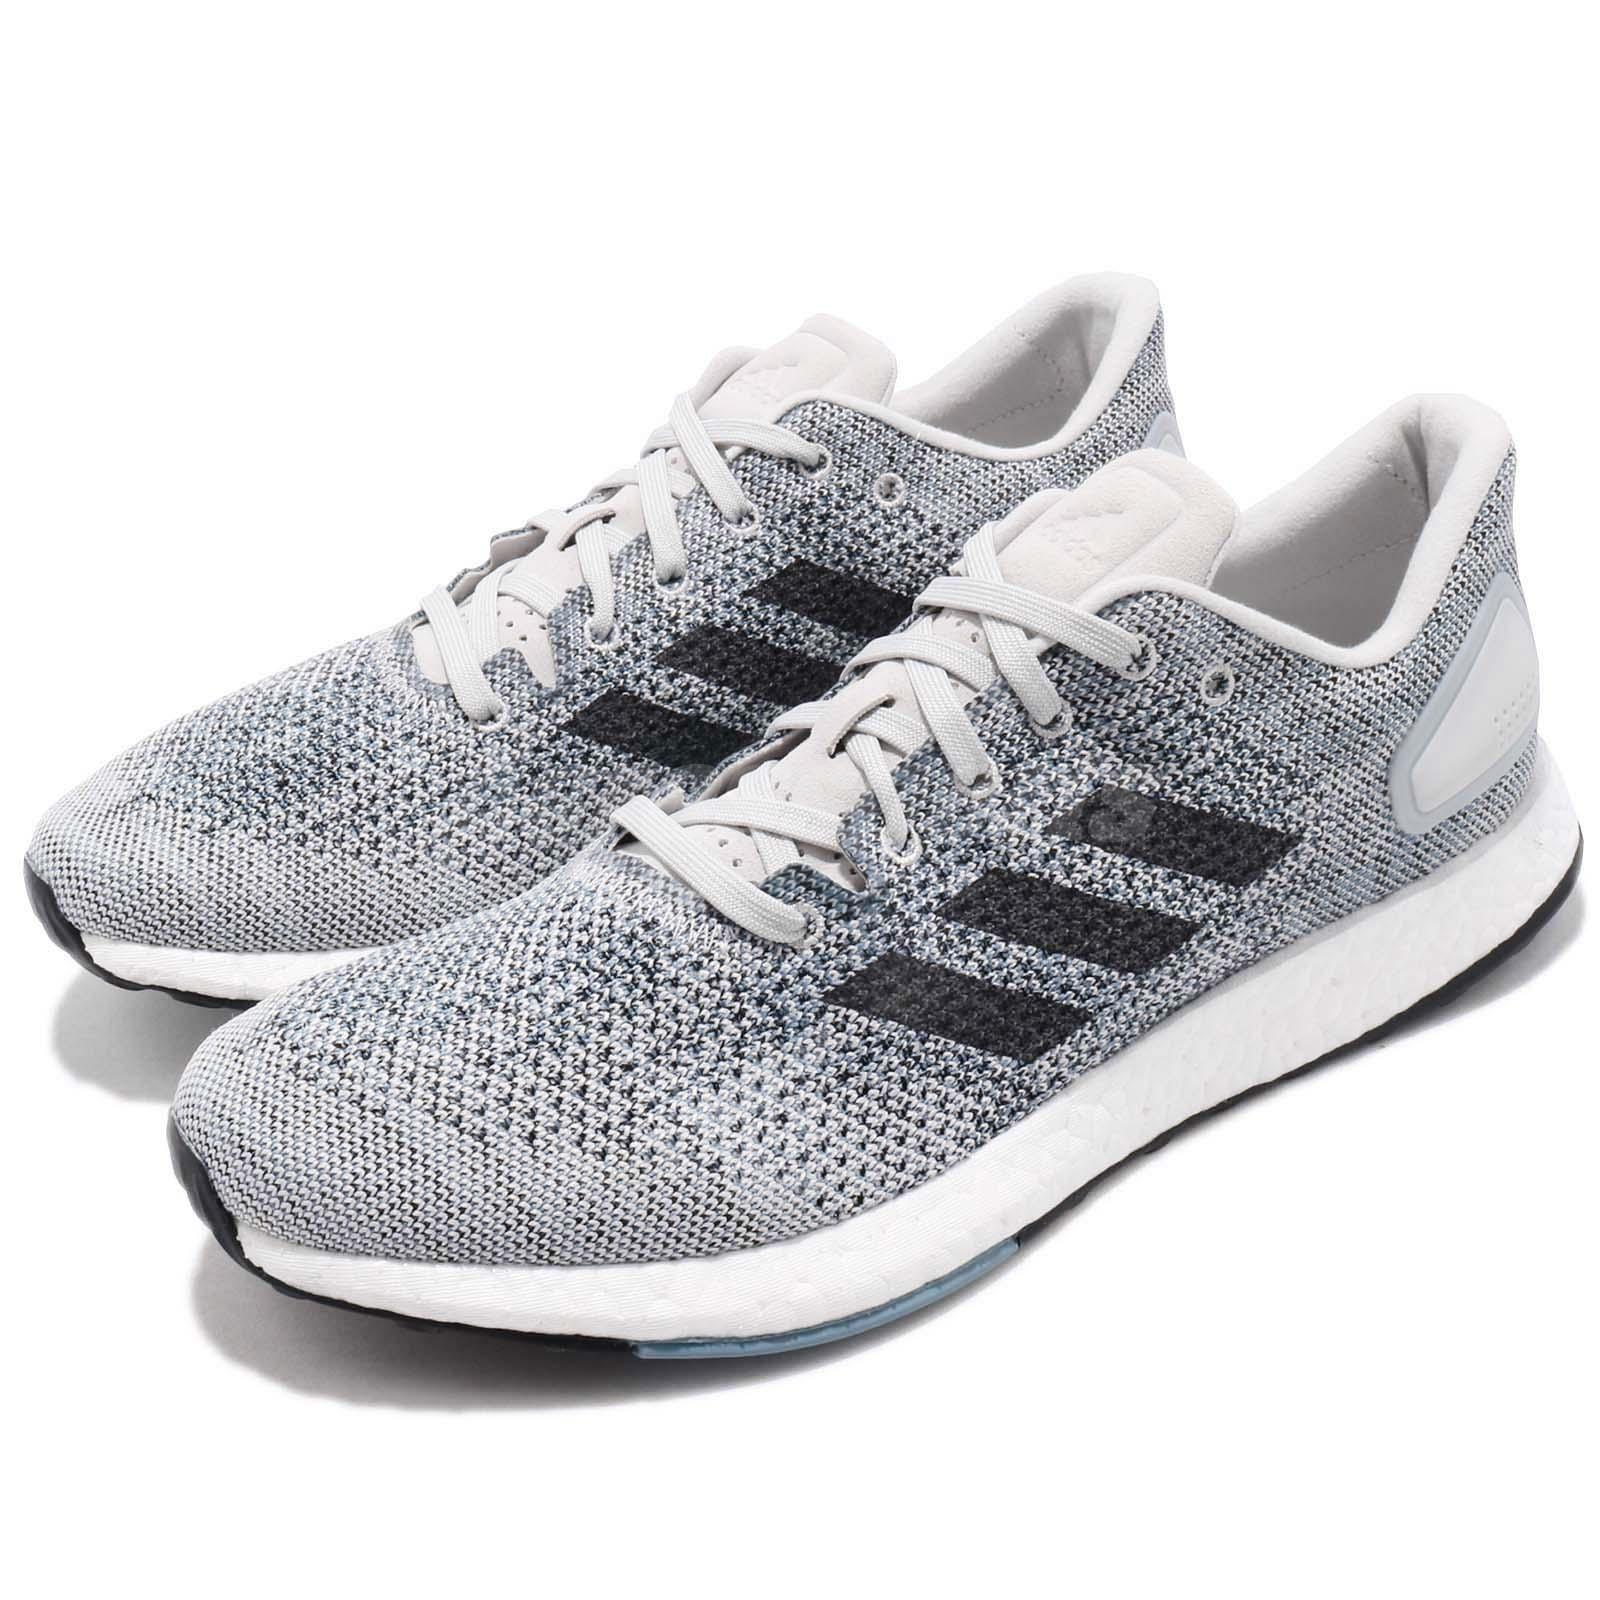 23e6fcfce4db4 Details about adidas PureBOOST DPR Grey White Mens Running Shoes Urban  Runner Sneakers CM8322